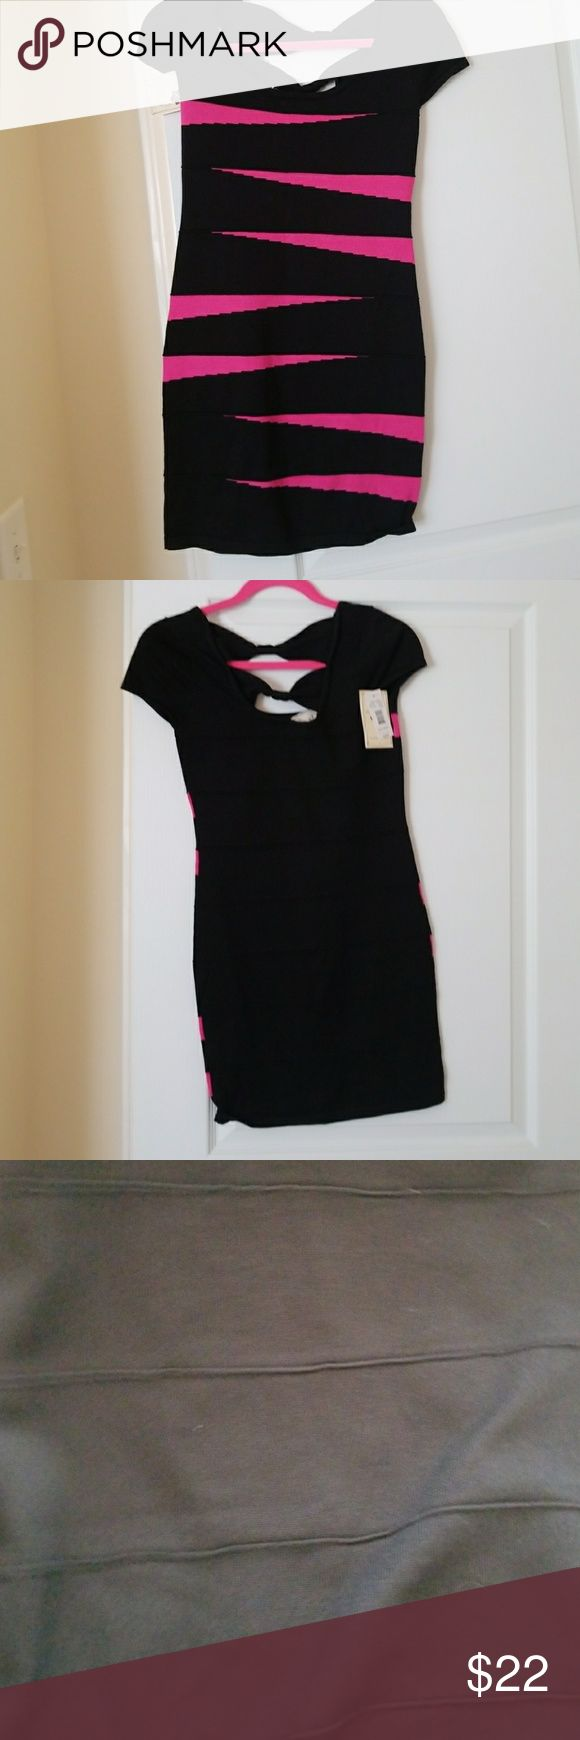 "Pink Rose hot pink and black dress size XS Pink Rose hot pink and black dress size XS. Very stretchy.  Round neckline with bow details on back. Perfect for a night out! Never worn, still has tags. For reference I am 135 lbs, 5'7"" and it's just too small for me. Pink Rose Dresses Mini"